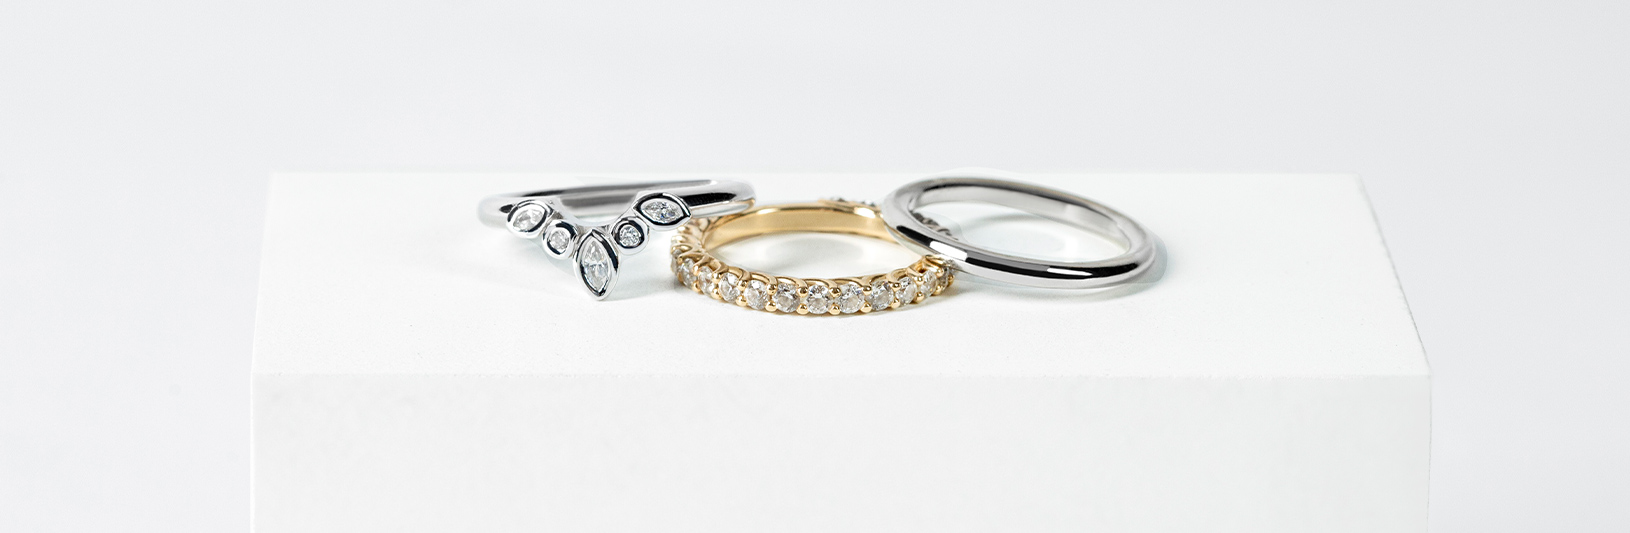 Stackable rings and wedding bands compared side by side